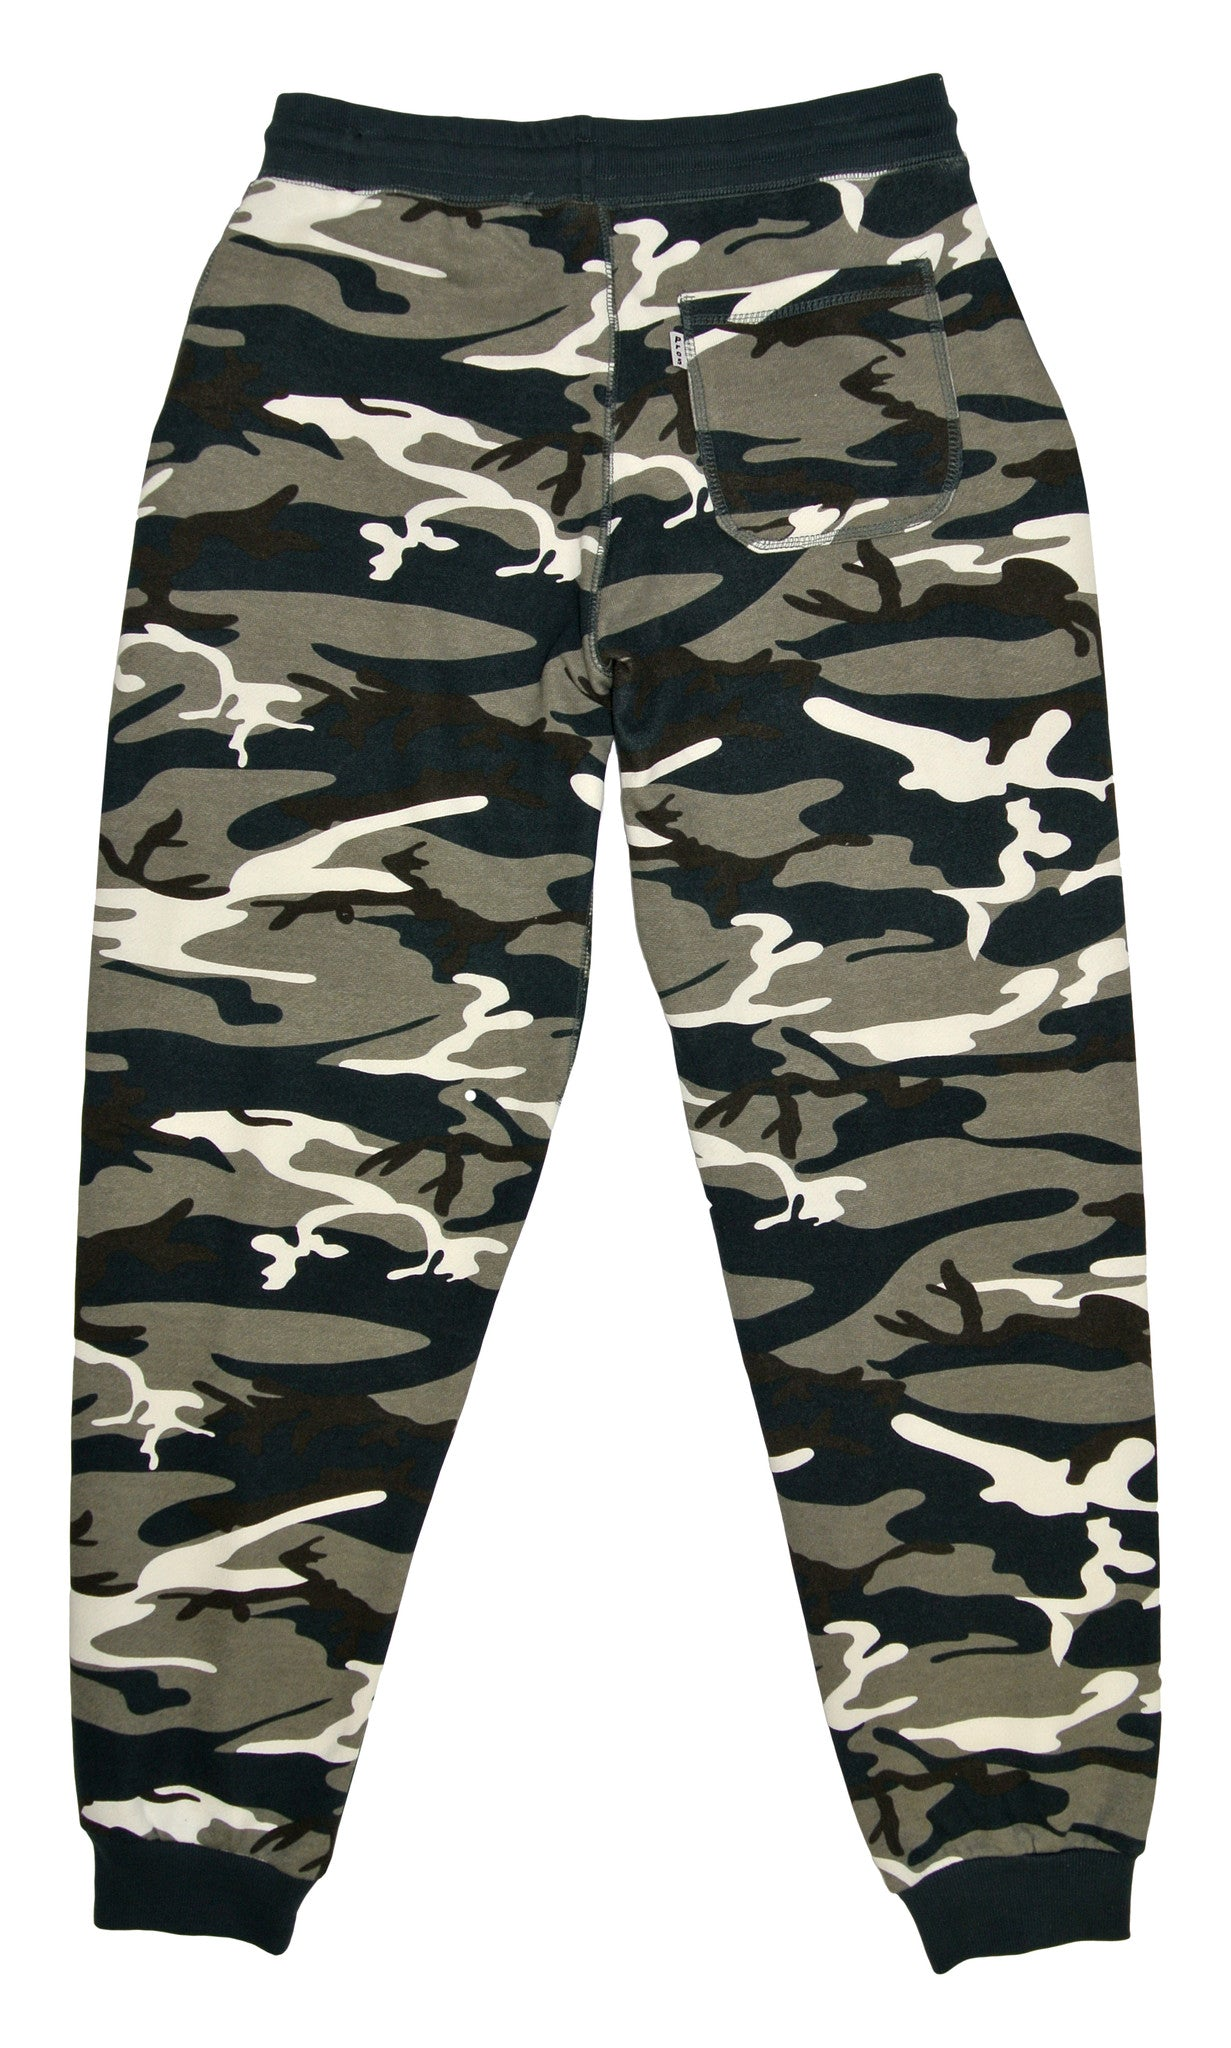 French Terry Fleece Pants - Pro 5 Apparel